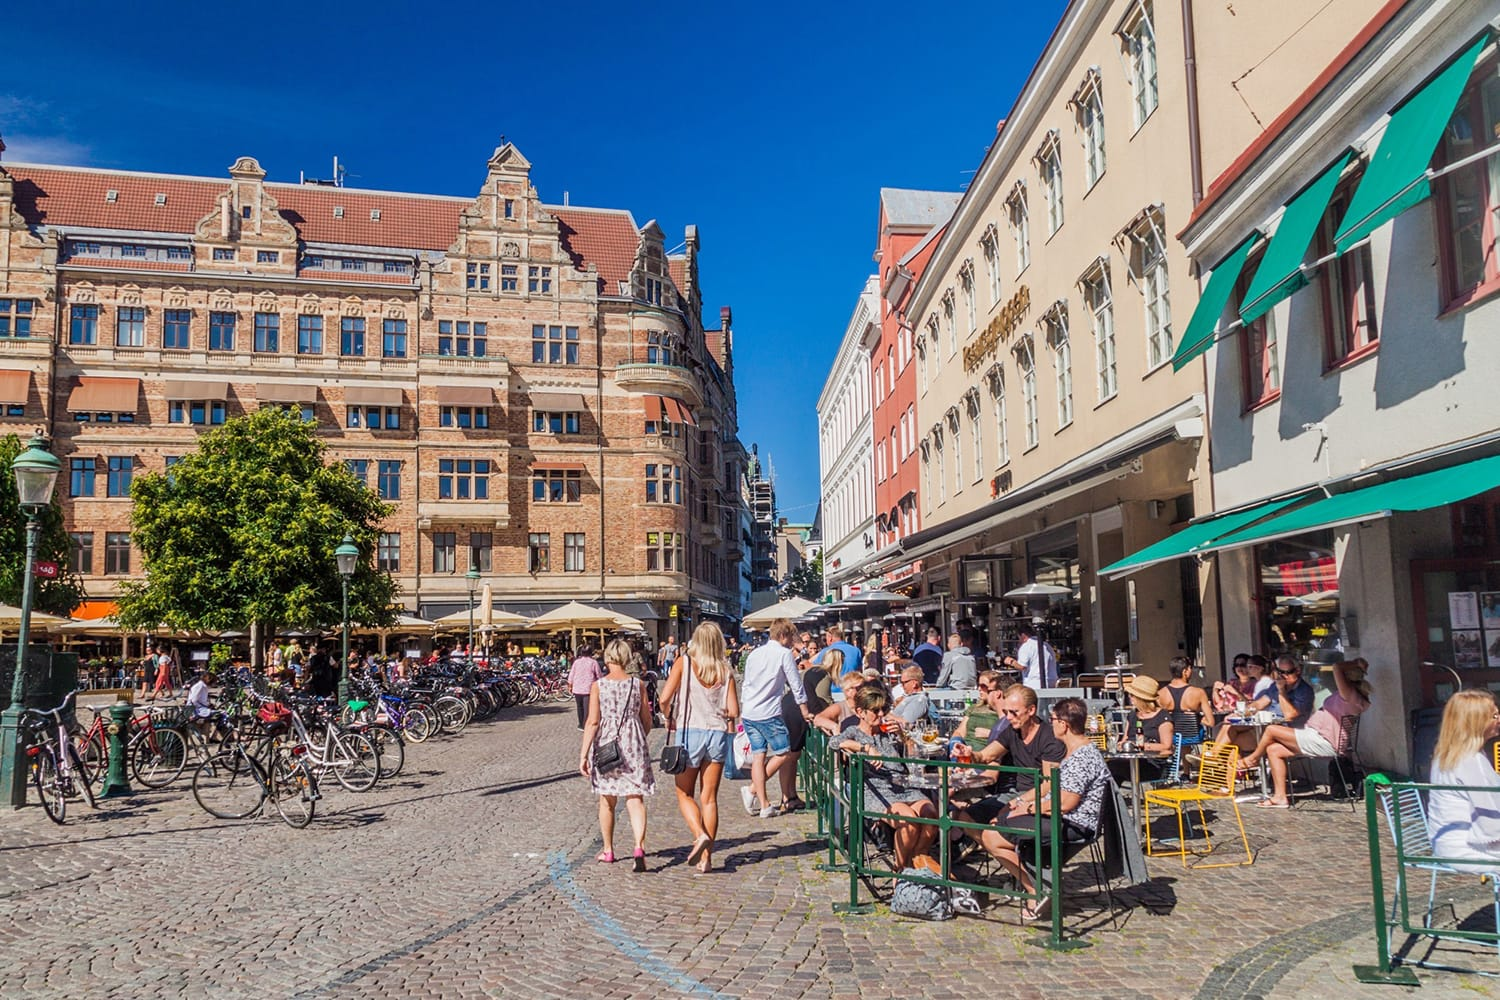 People enjoy a sunny day at Stortorget square in Malmo, Sweden